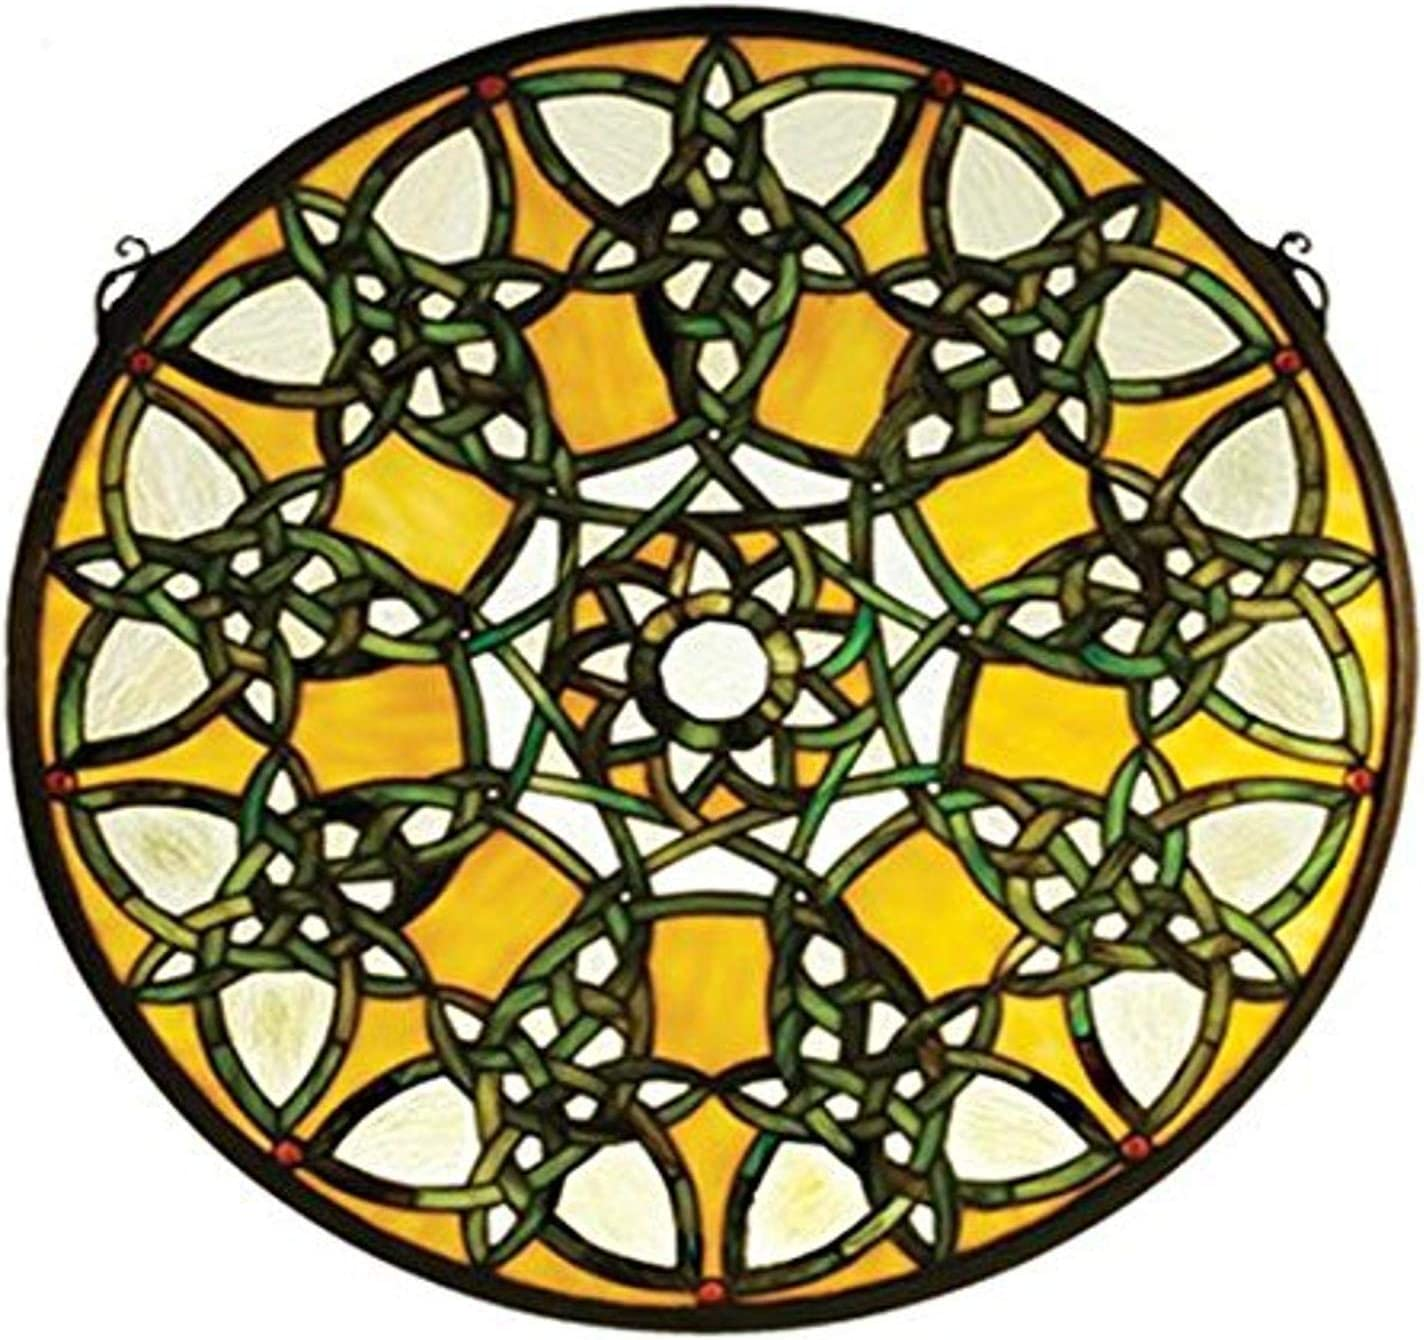 Meyda Tiffany 51531 Knotwork Trance Wind New arrival Stained Medallion Max 75% OFF Glass